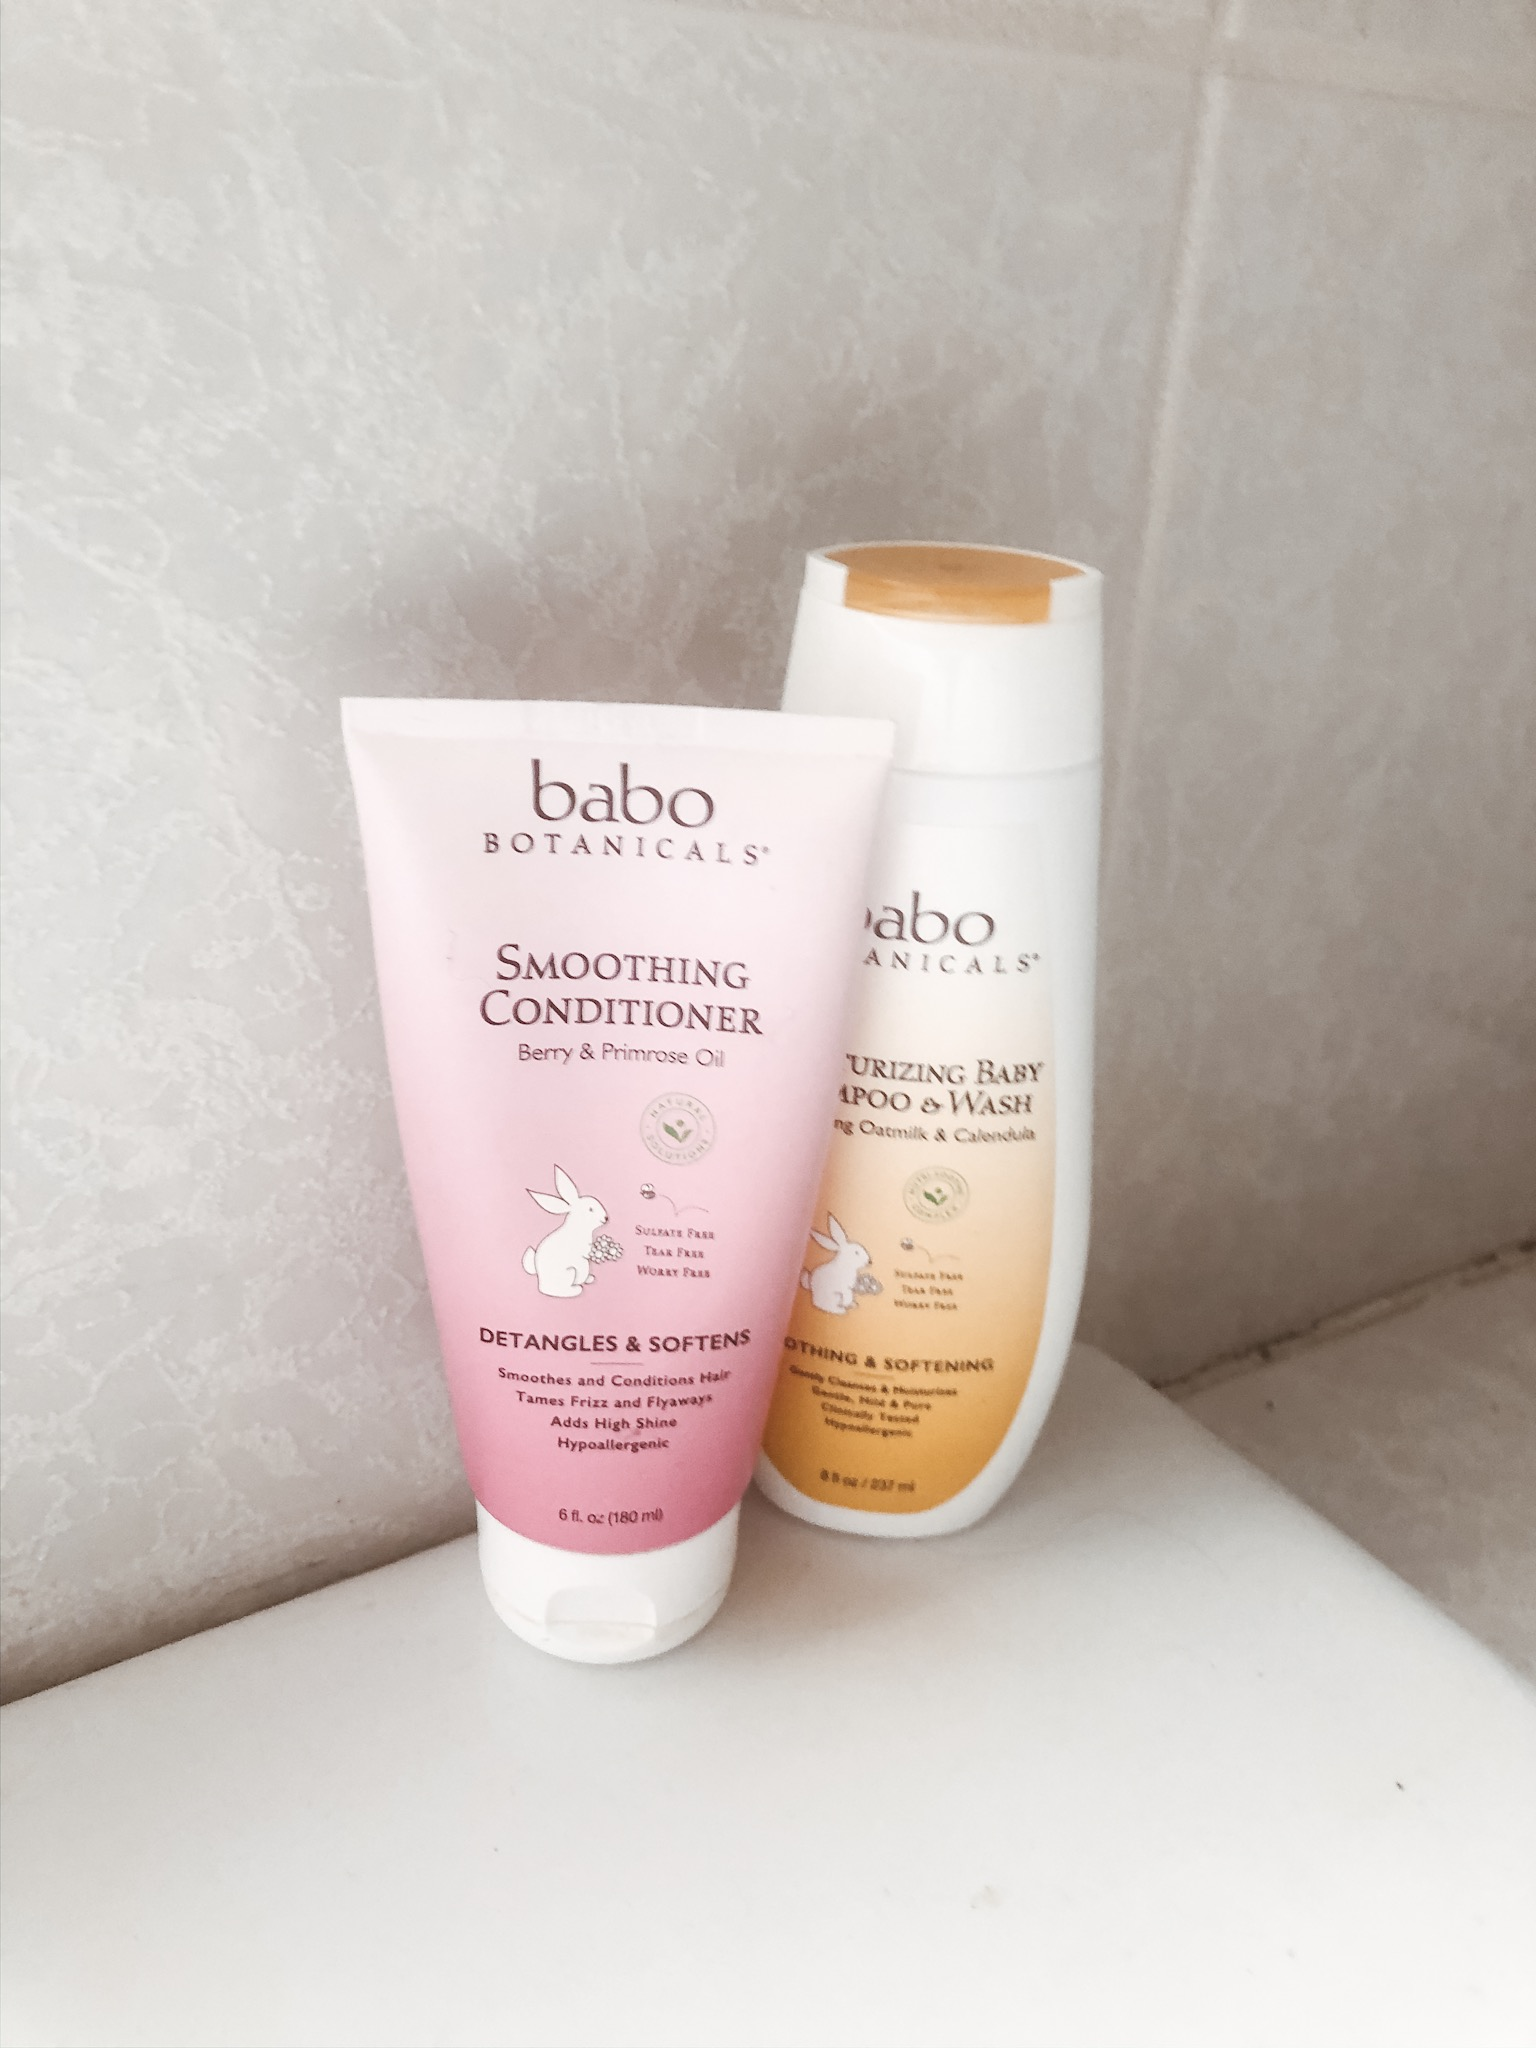 babo botanicals products